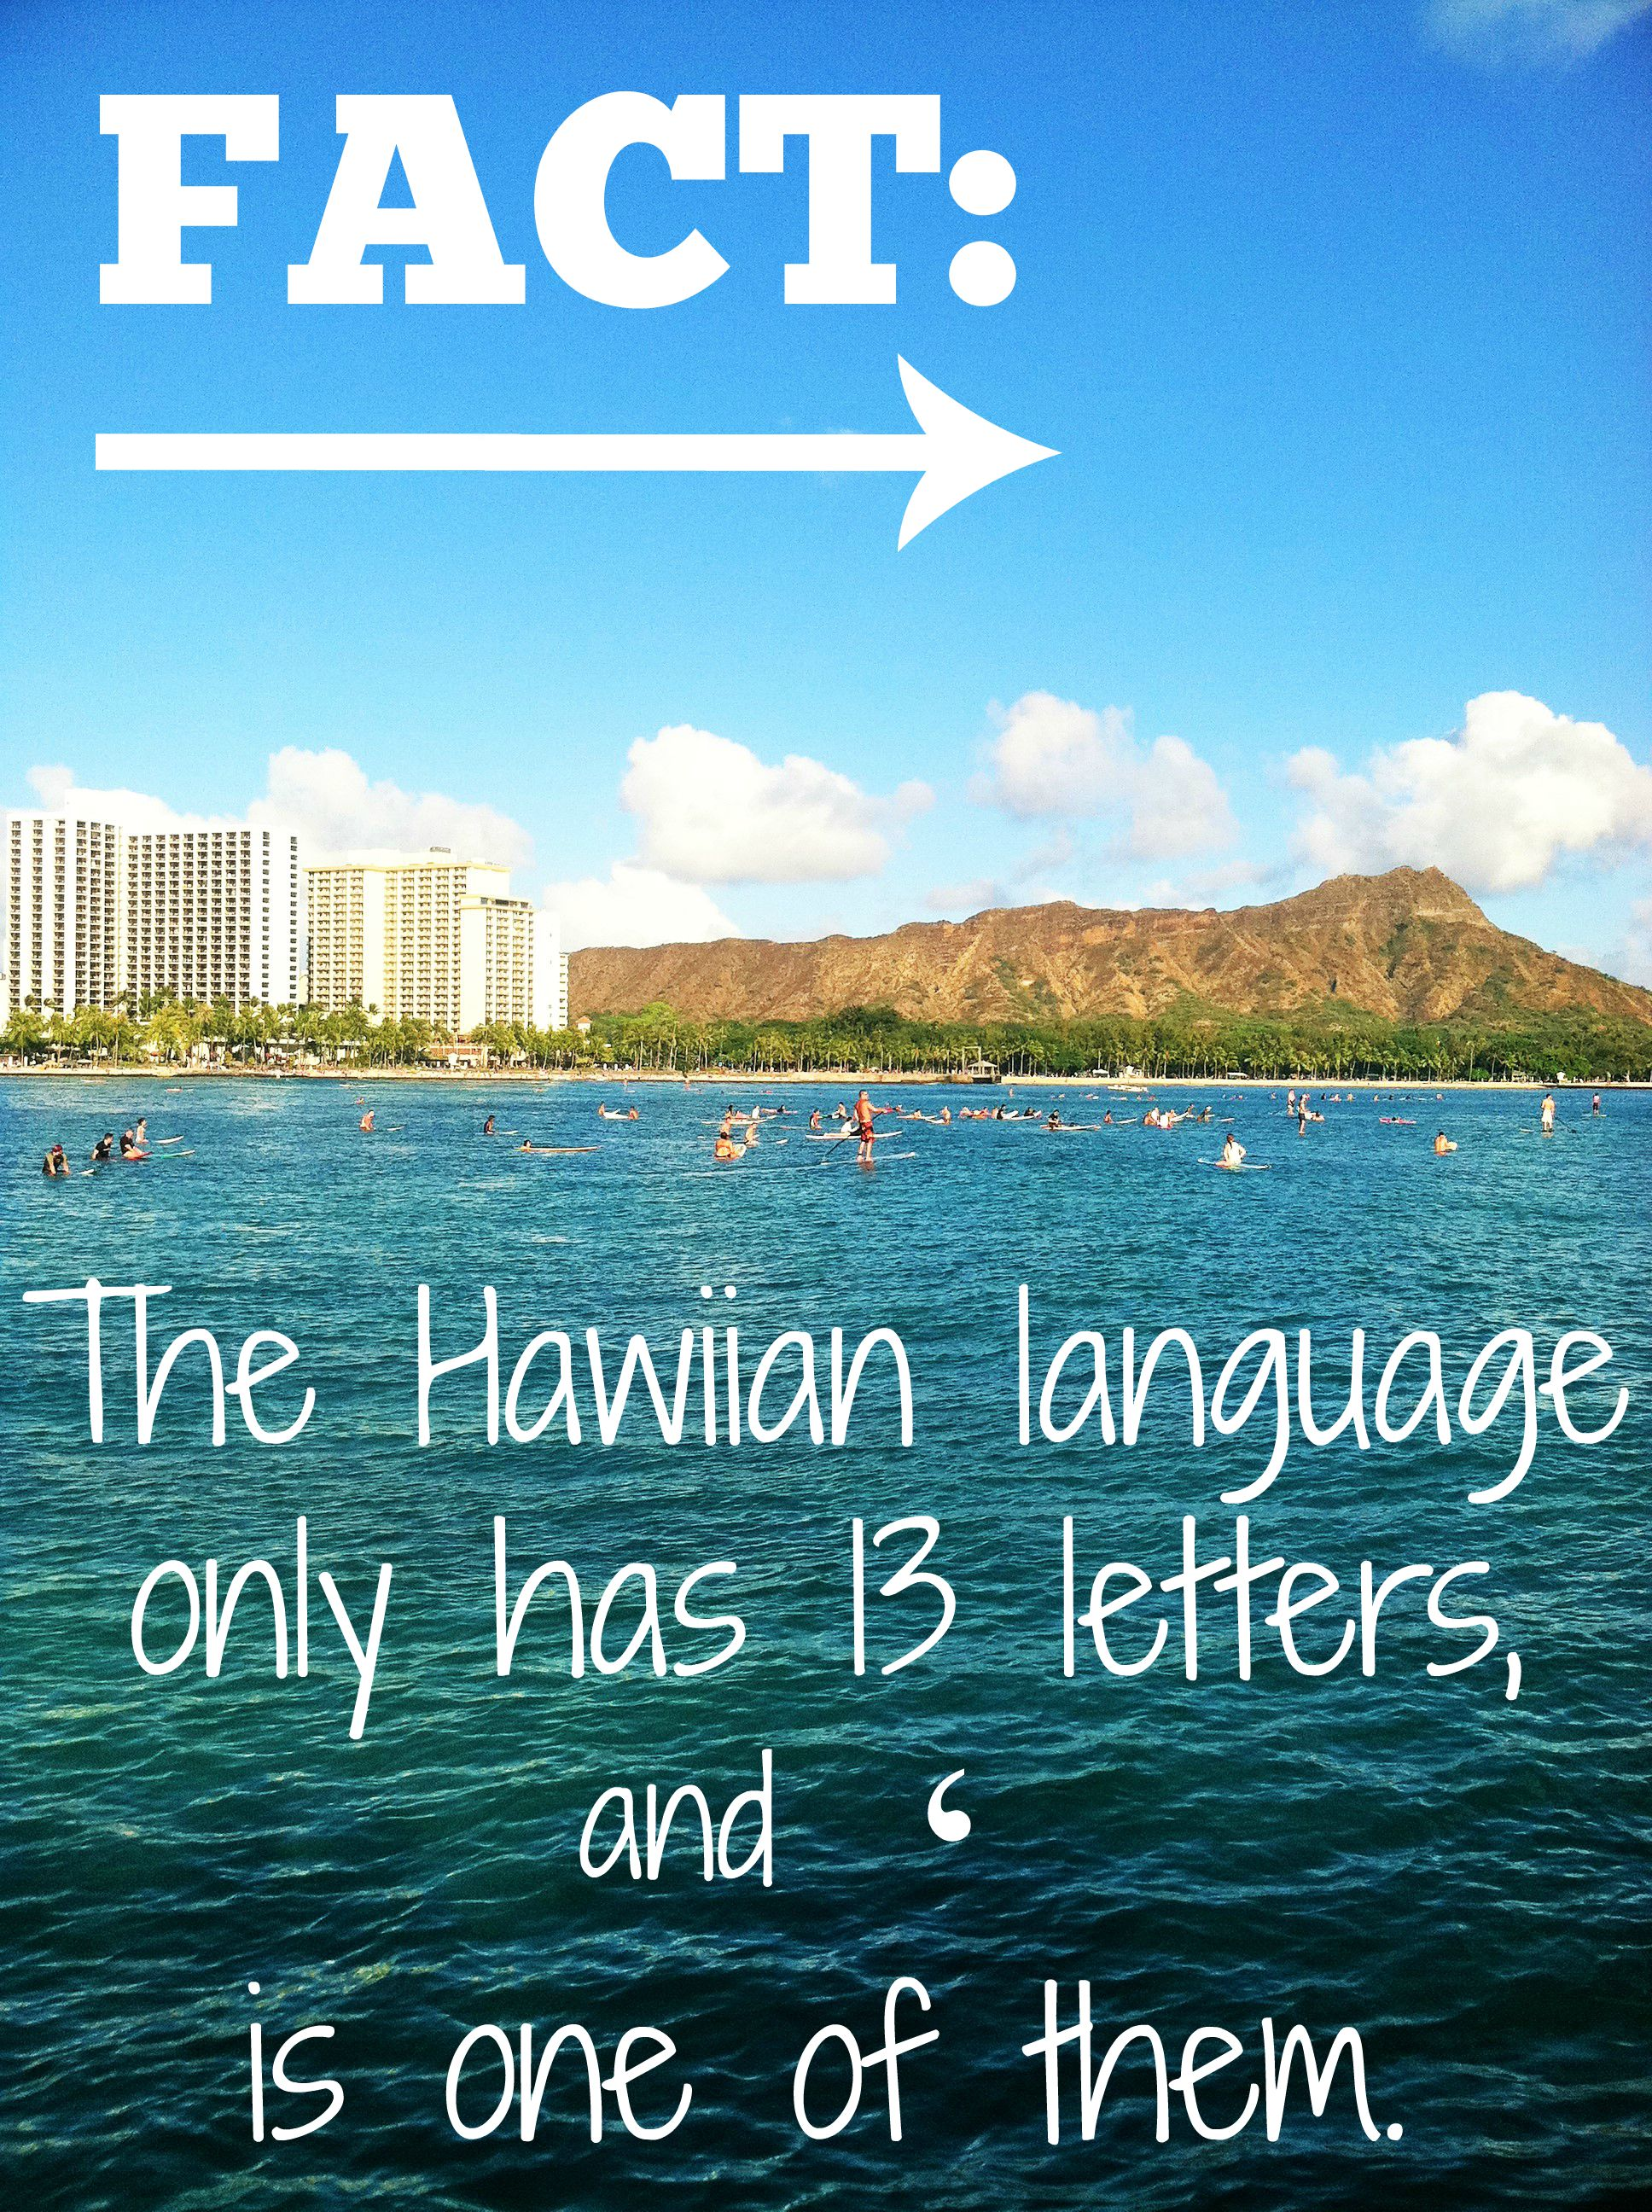 how to change your name in hawaii